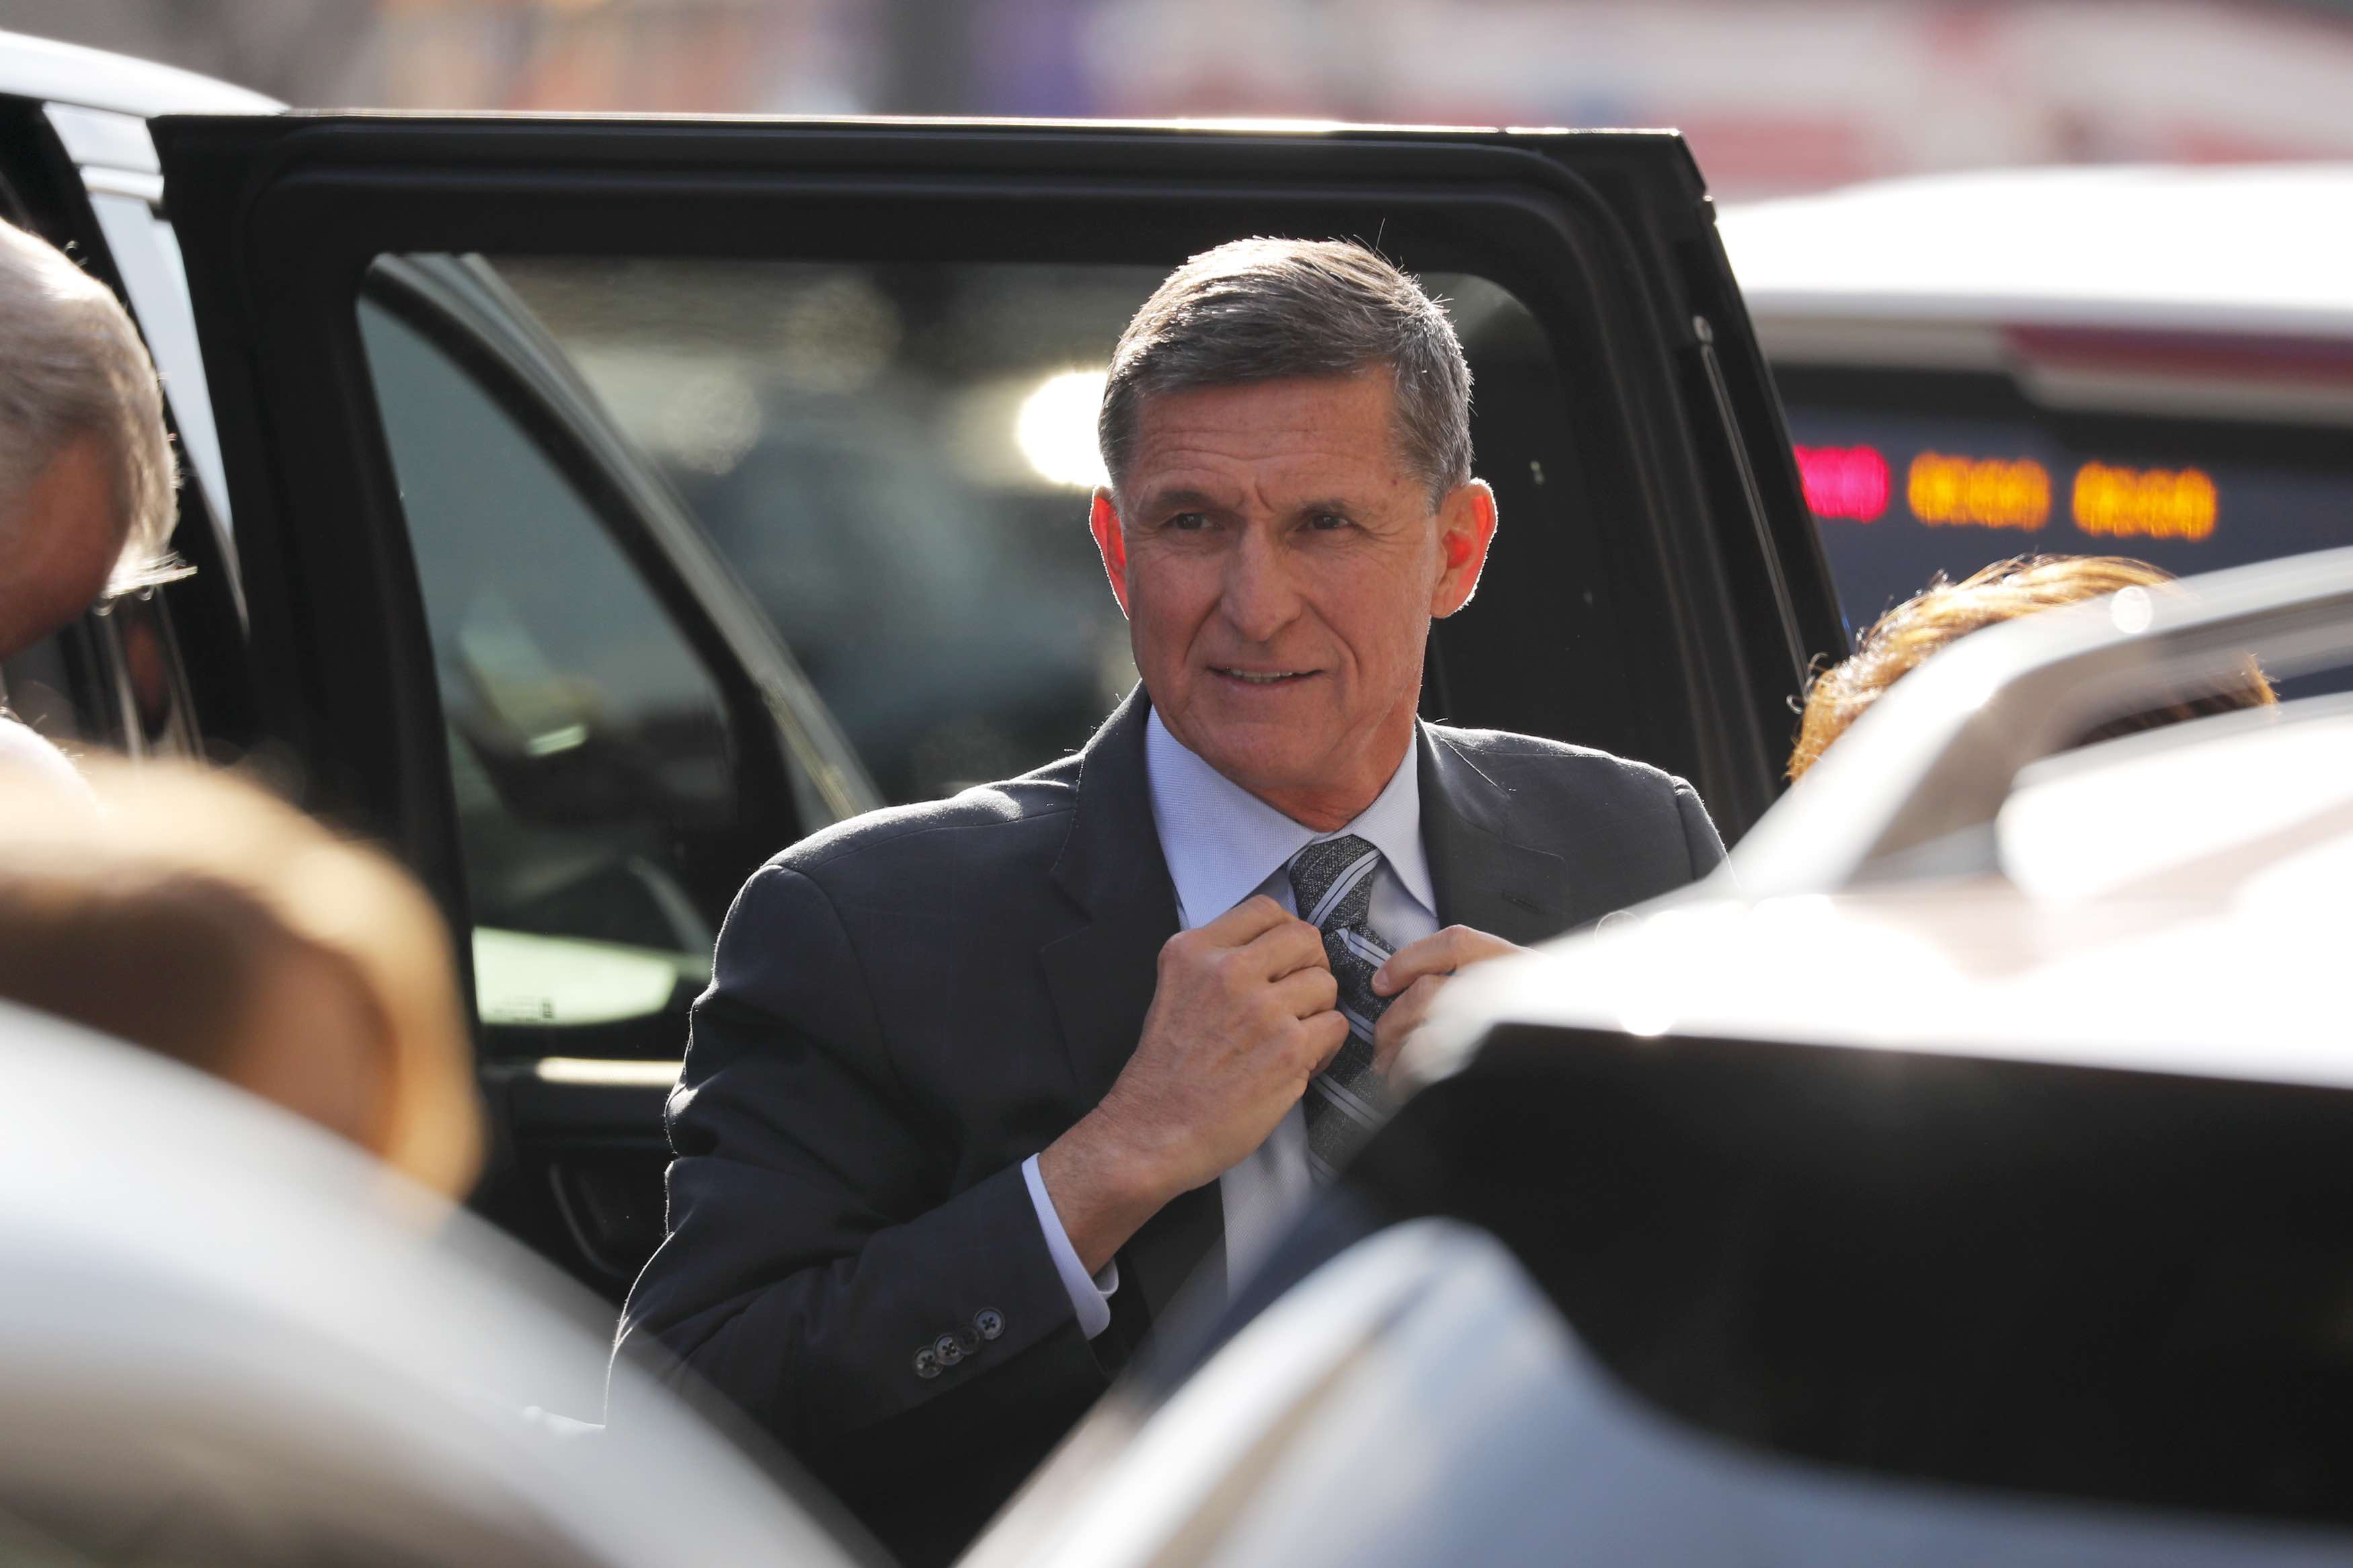 Michael Flynn to Cooperate in US Election Investigation After Pleading Guilty to Lying on Russia